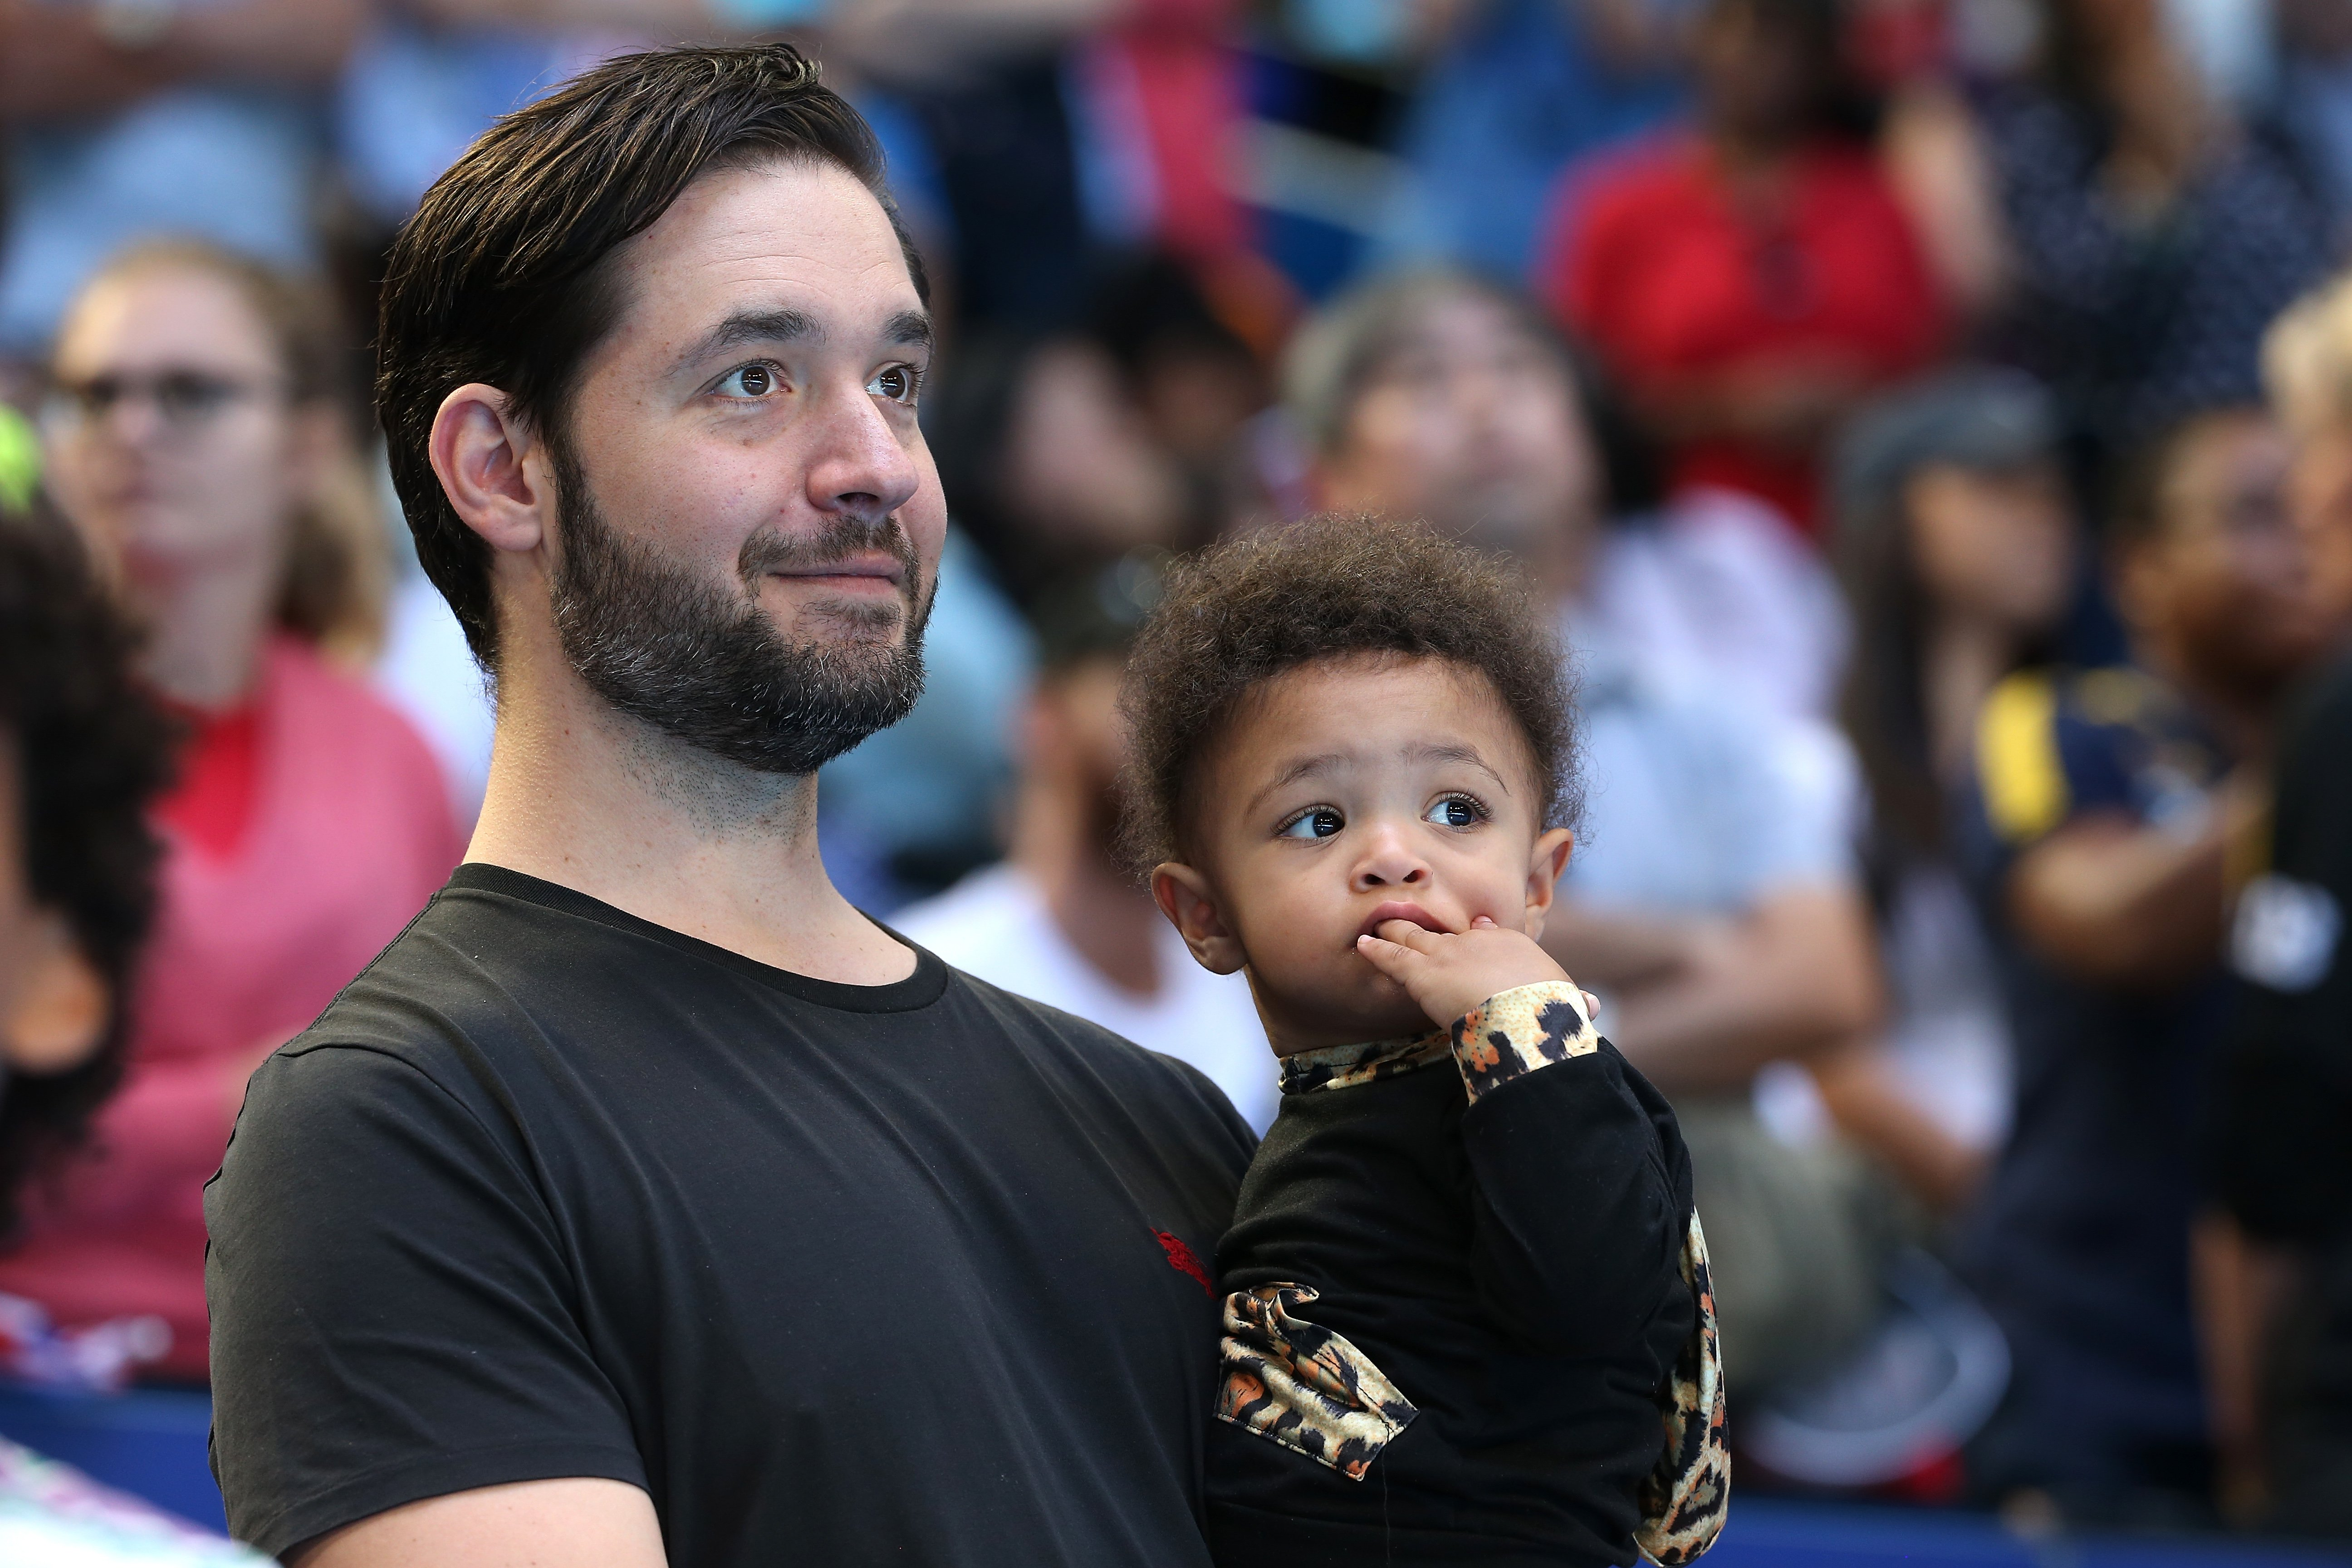 Alexis Ohanian & Olympia Ohanian watch Serena Williams during the 2019 Hopman Cup on Jan. 03, 2019 in Perth, Australia. | Photo: Getty Images